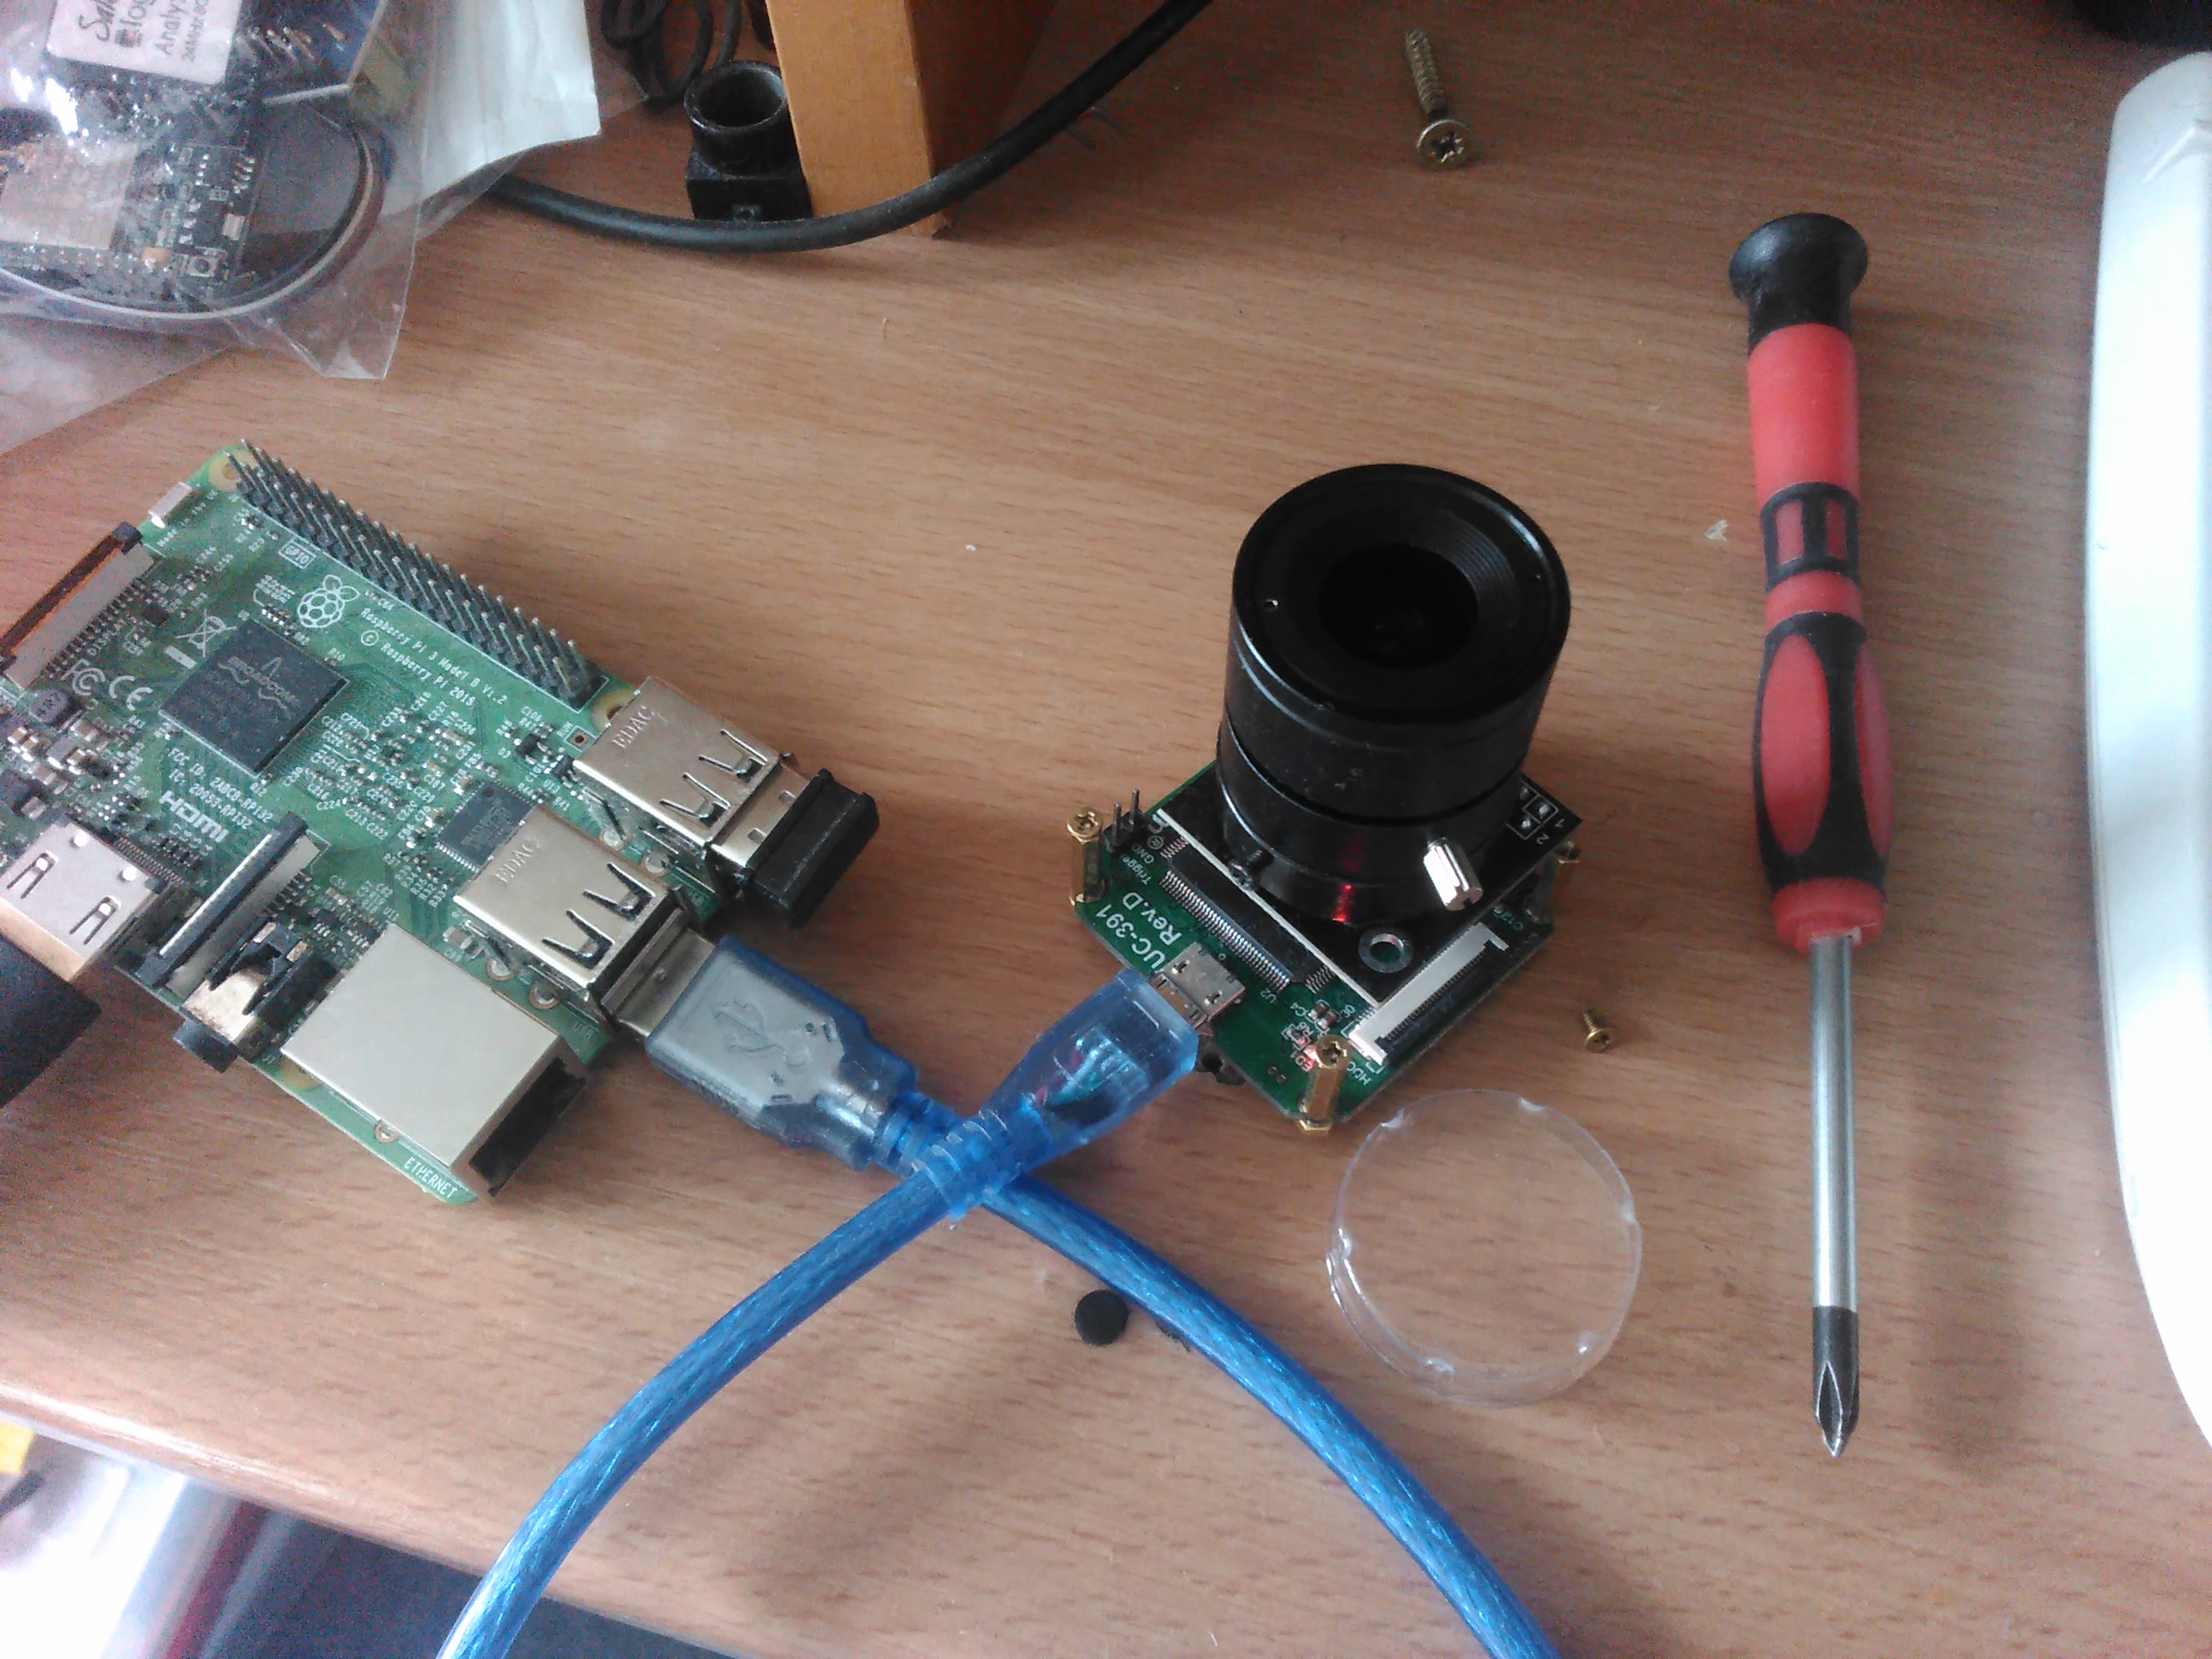 Reading 8bit synchronous data @ 30MHz - interface RPI3 with camera